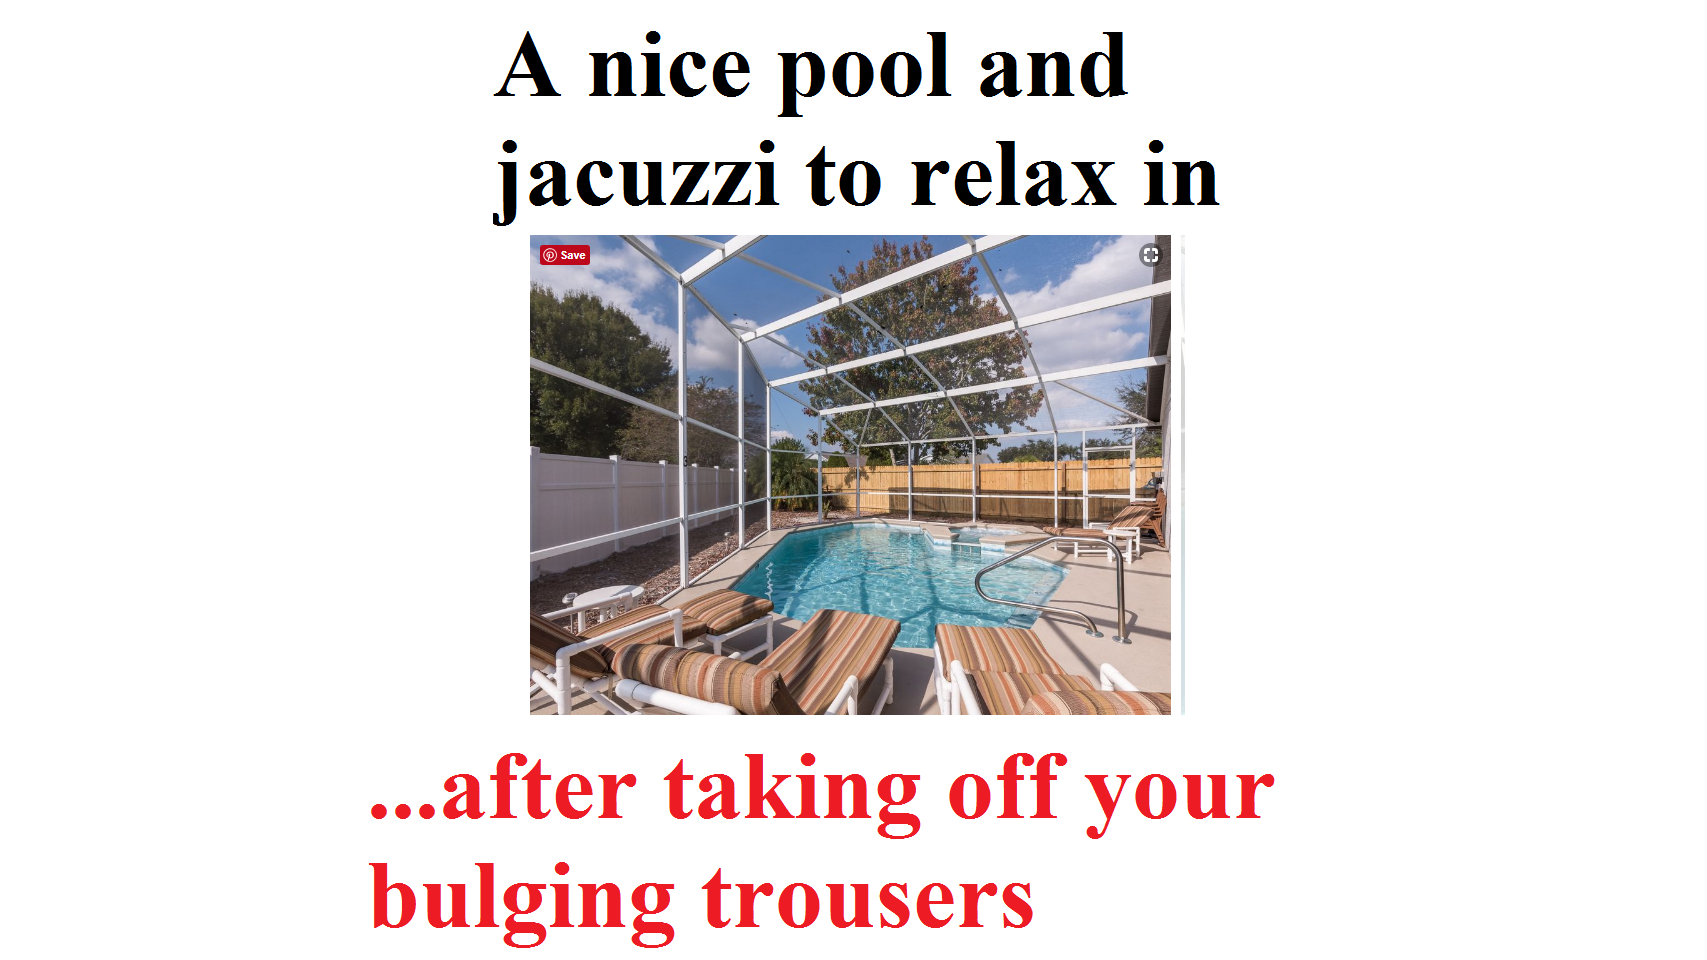 Pension Life Blog - Mastermind - Stephen Ward has a nice pool to relaxing in after scamming thousands of people out of their pensions